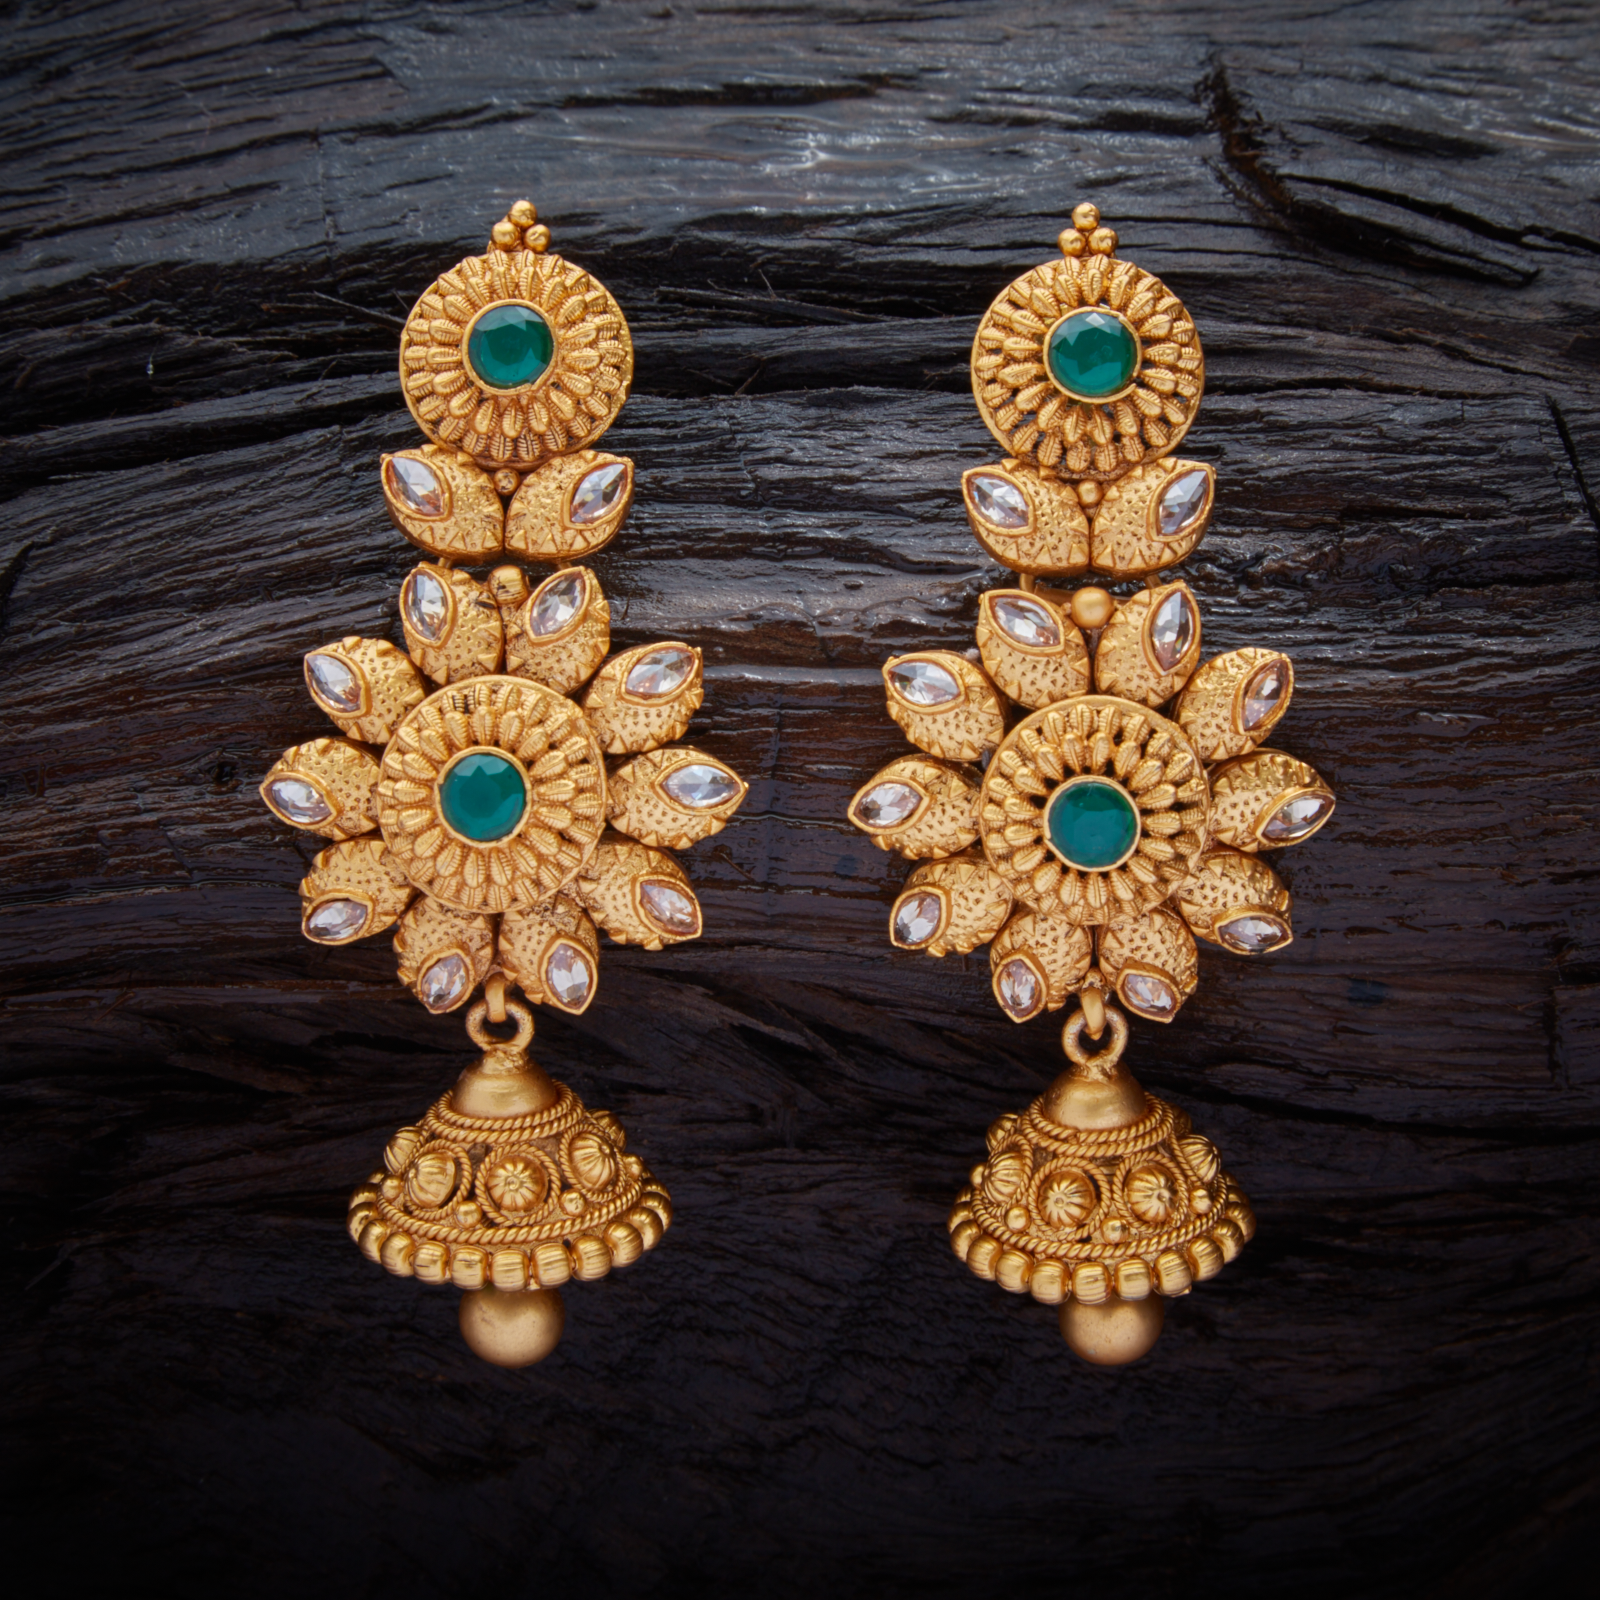 Vintage Antique Hanging Earrings Studded With Green Synthetic Stones With Gold Polish Gold Jewelry Fashion Antique Jewelry Indian Antique Earrings